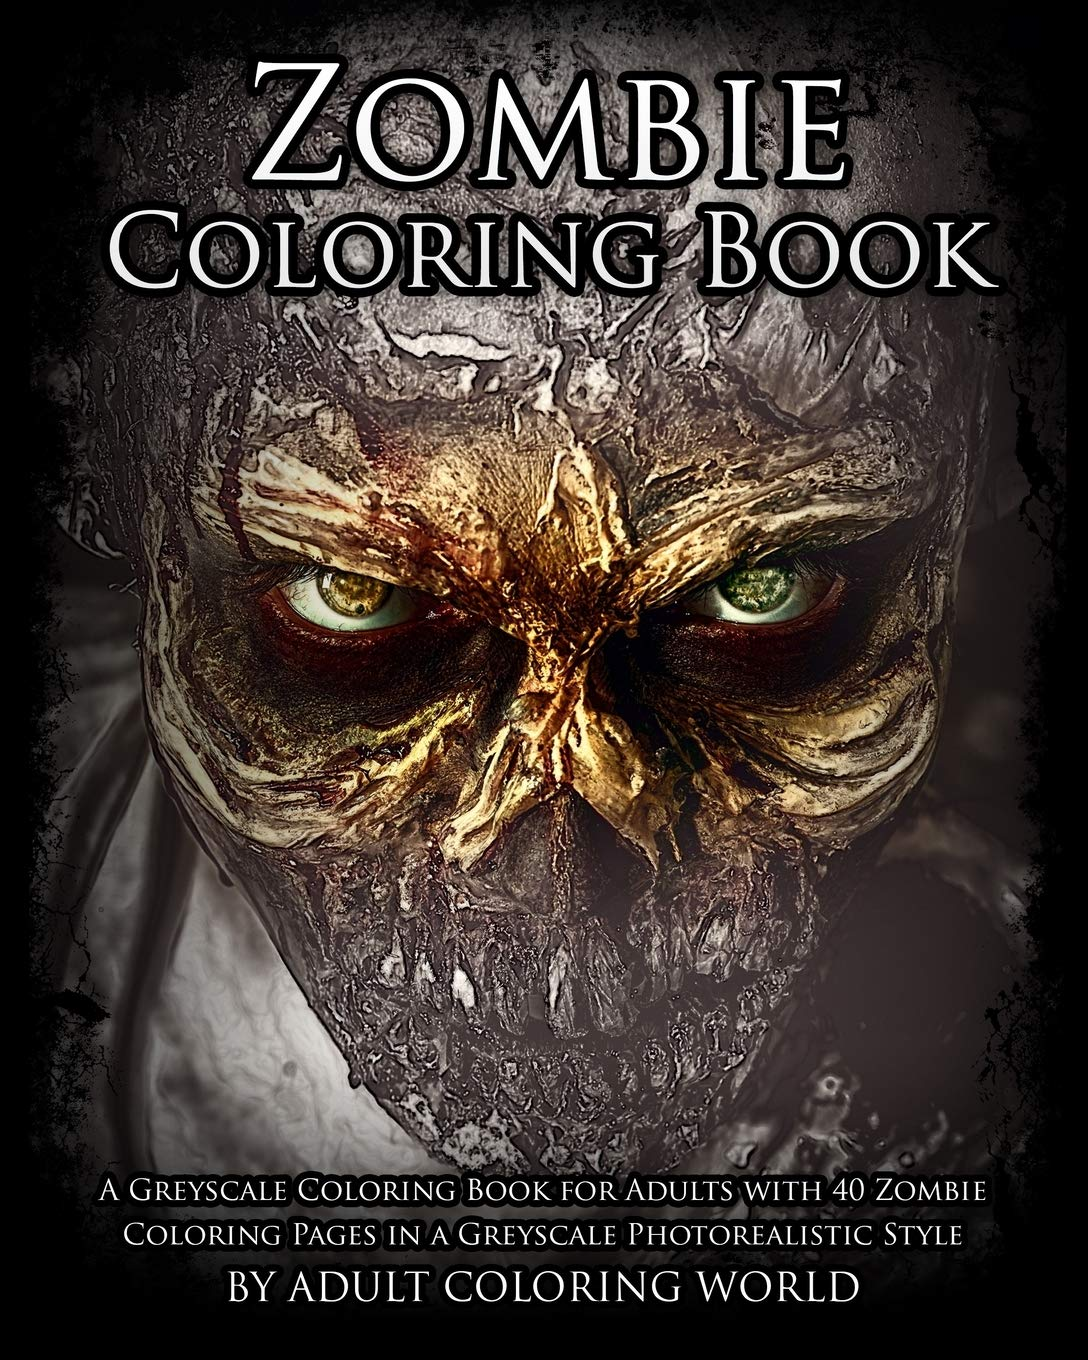 - Amazon.com: Zombie Coloring Book: A Greyscale Coloring Book For Adults With  40 Zombie Coloring Pages In A Greyscale Photorealistic Style (Greyscale Coloring  Books For Adults) (Volume 1) (9781530899111): World, Greyscale Coloring,  World,